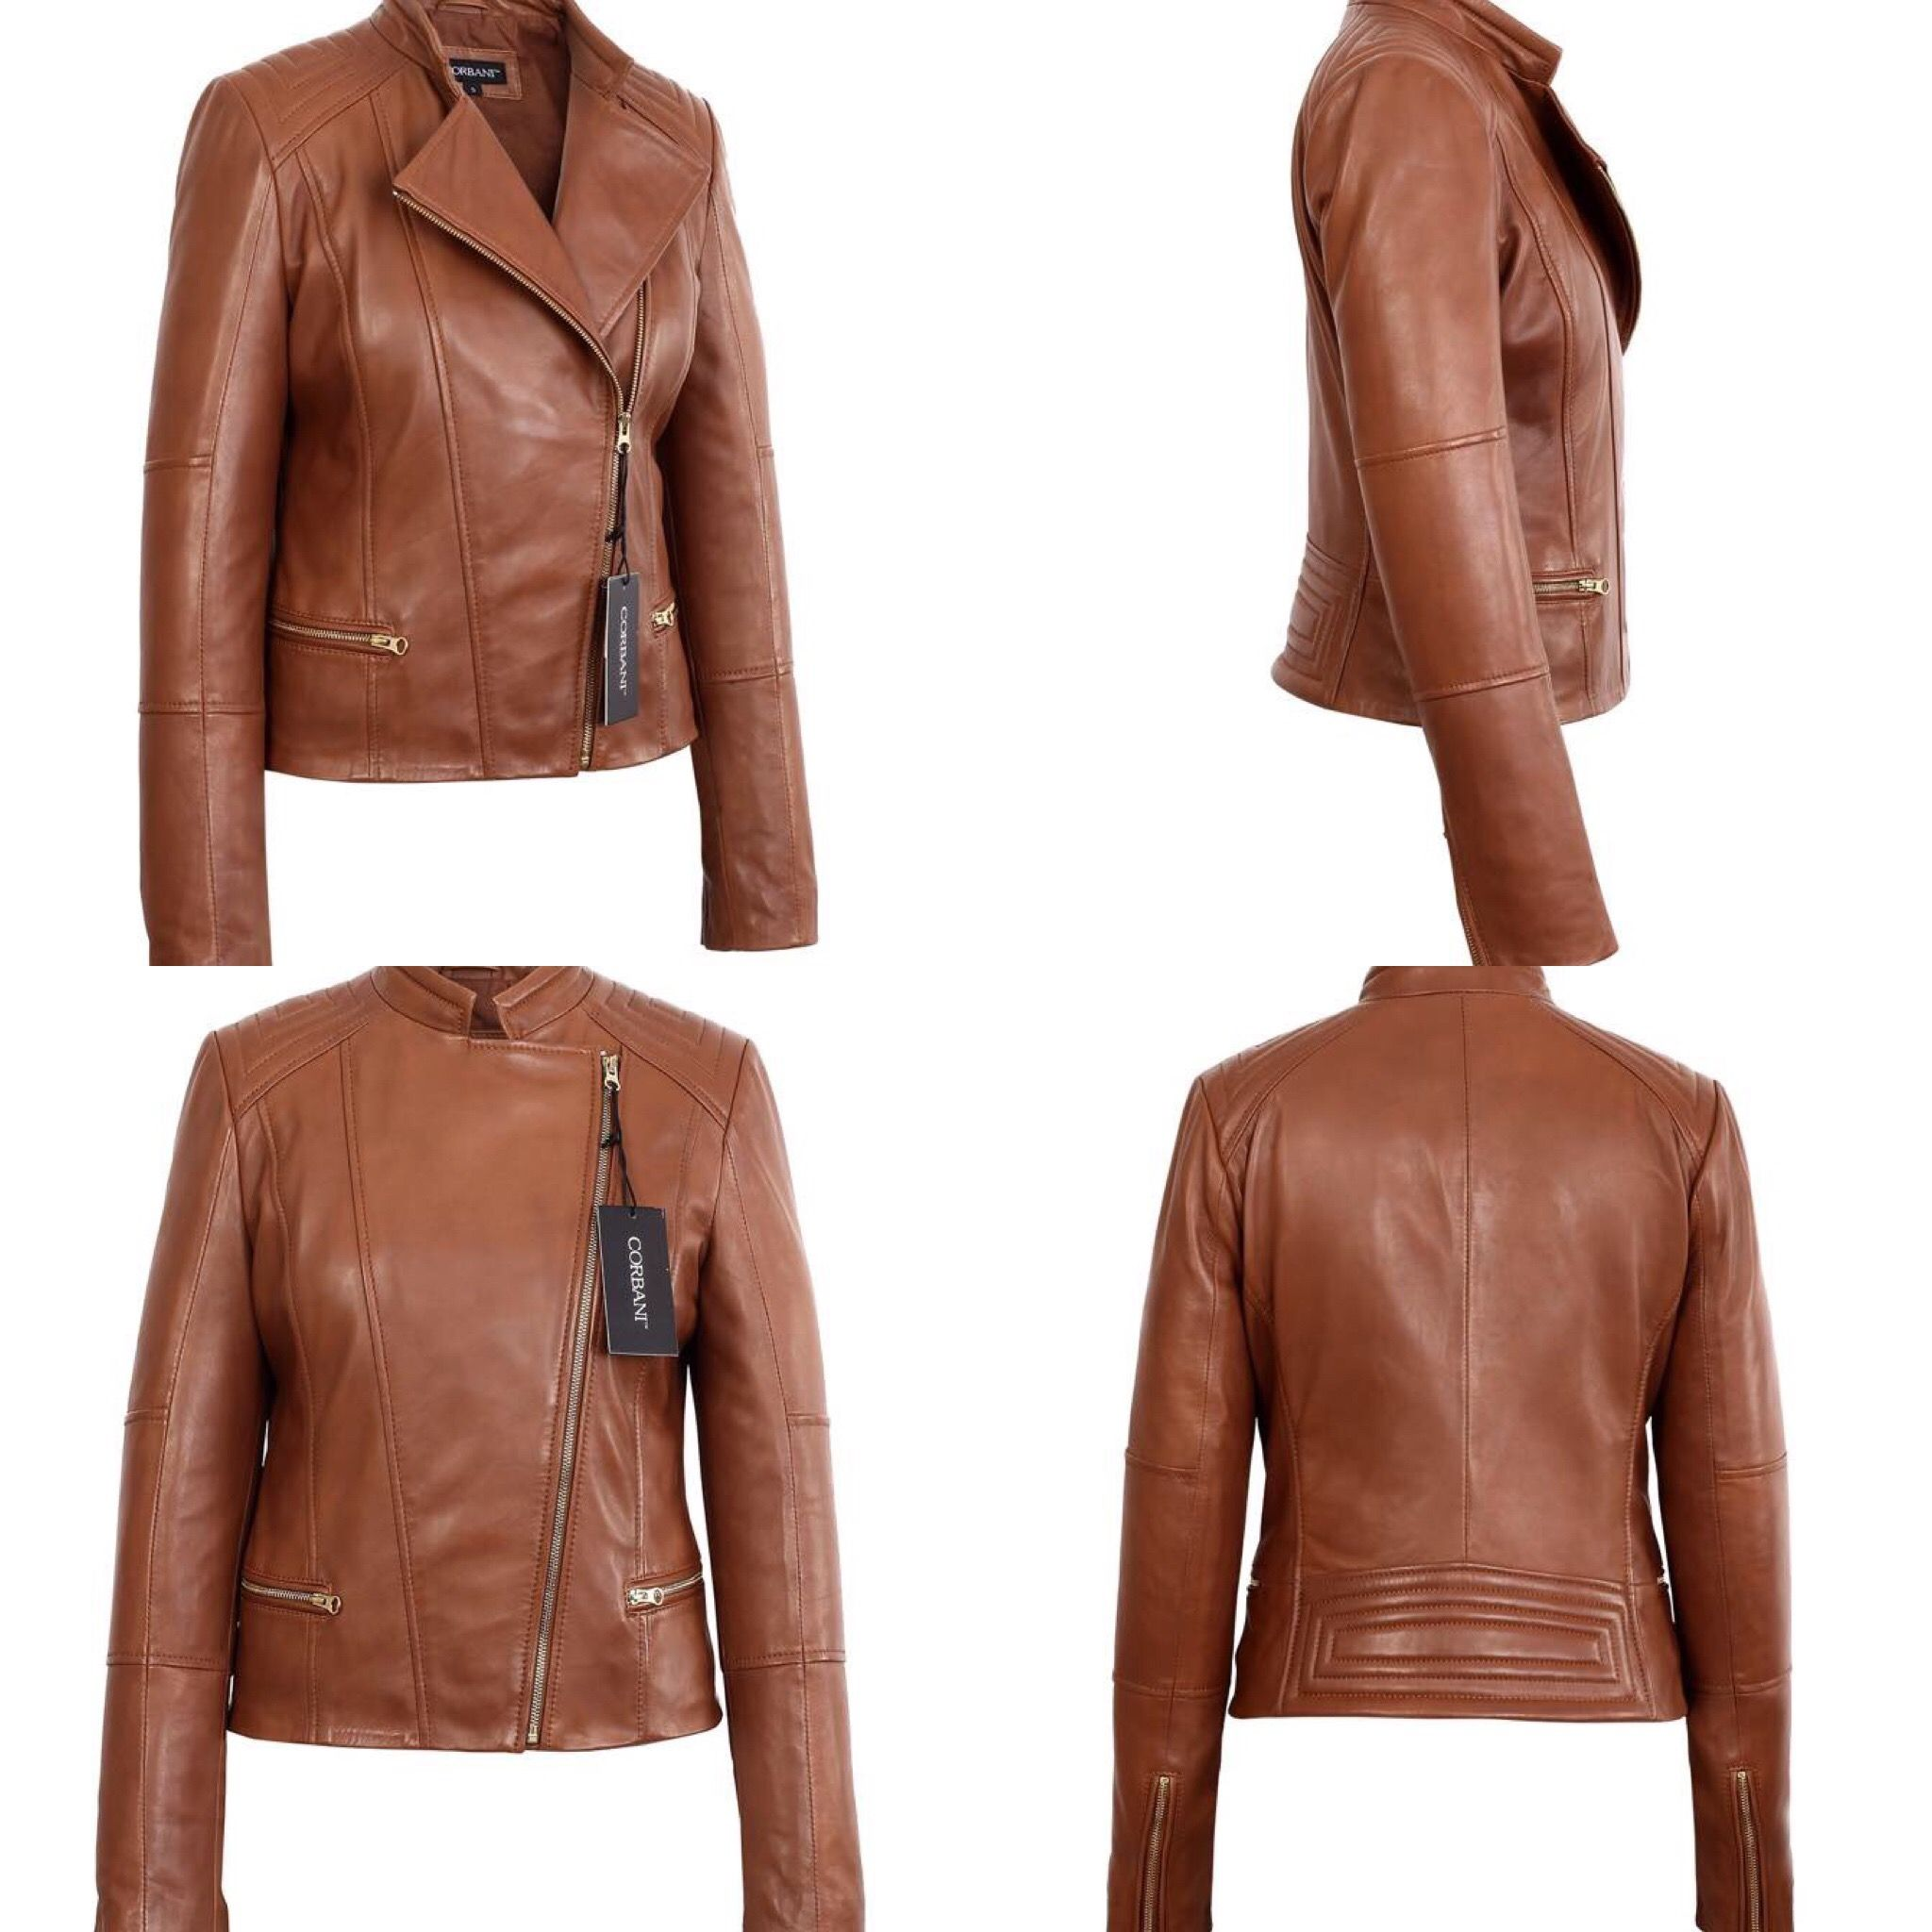 Who sells leather jackets